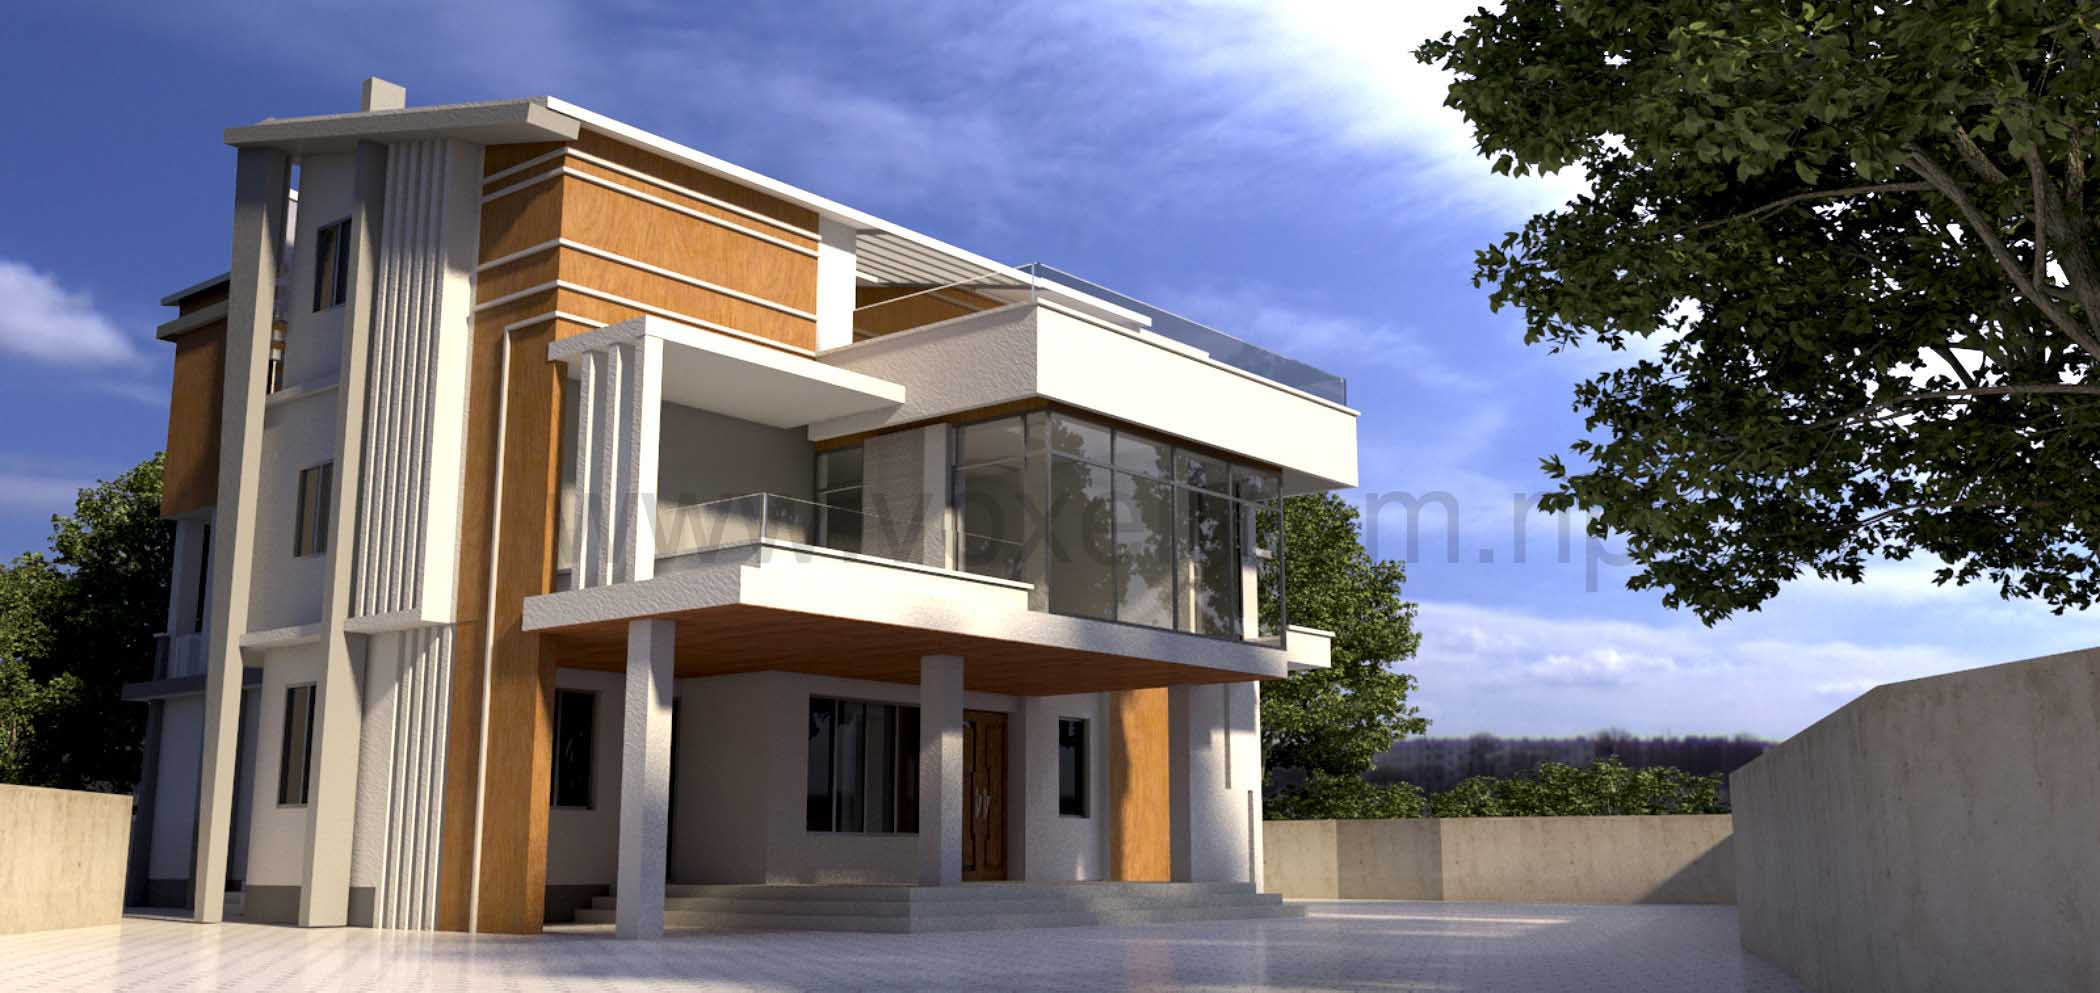 Voxel architects architect engineering consultant for Modern house design in nepal